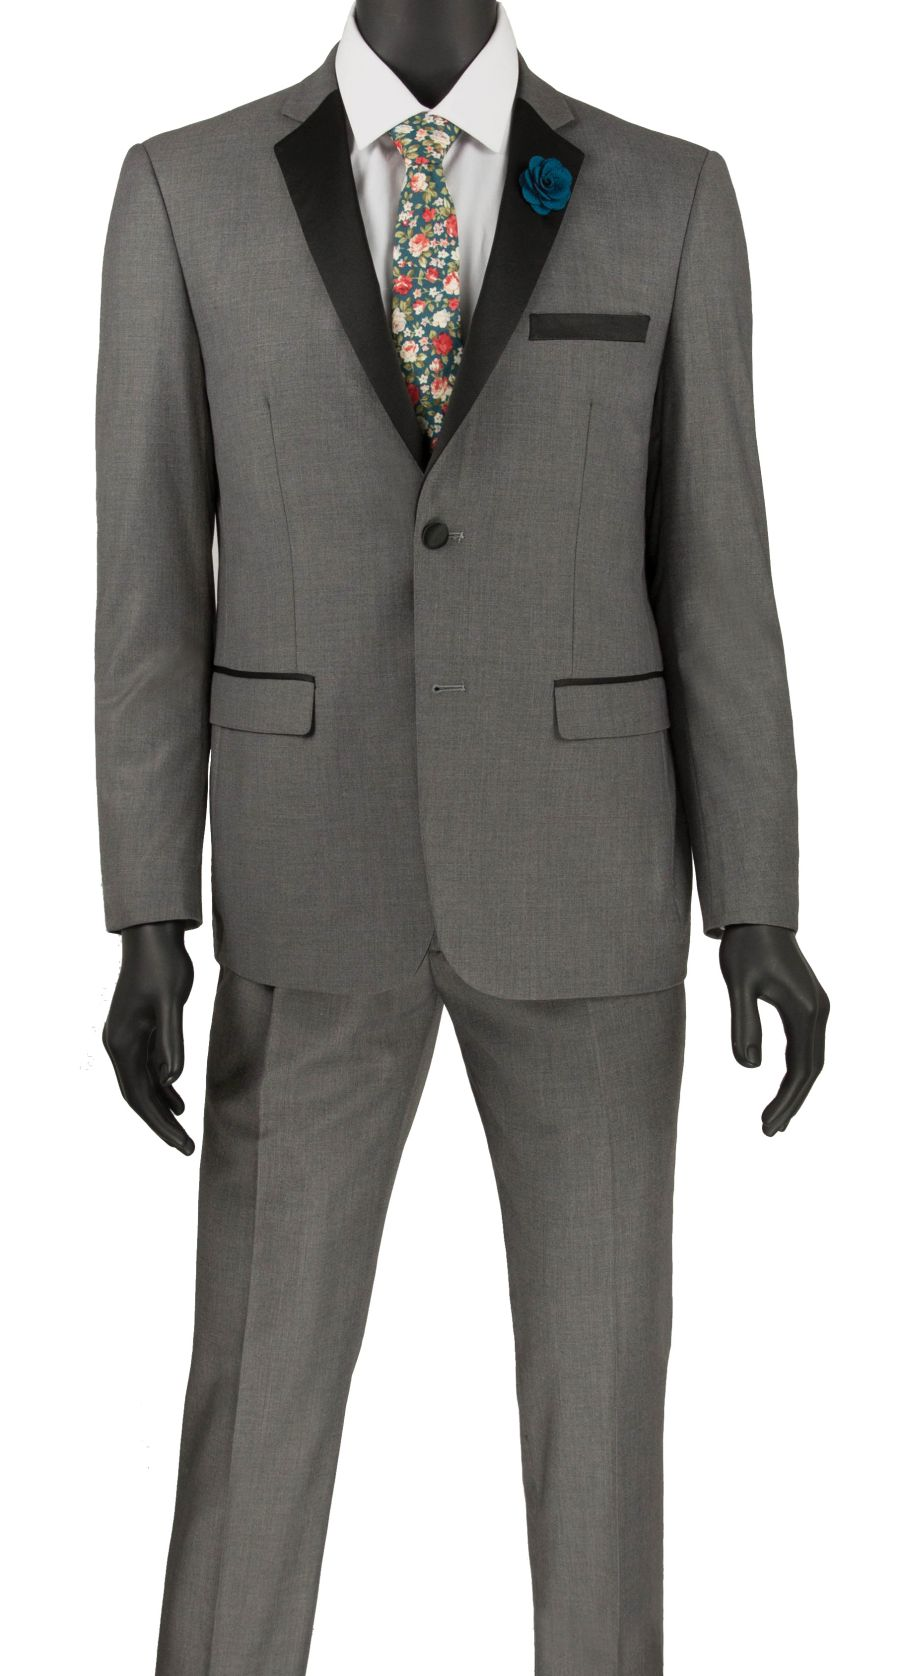 Vinci Men Tuxedo T-US900 Gray - Church Suits For Less